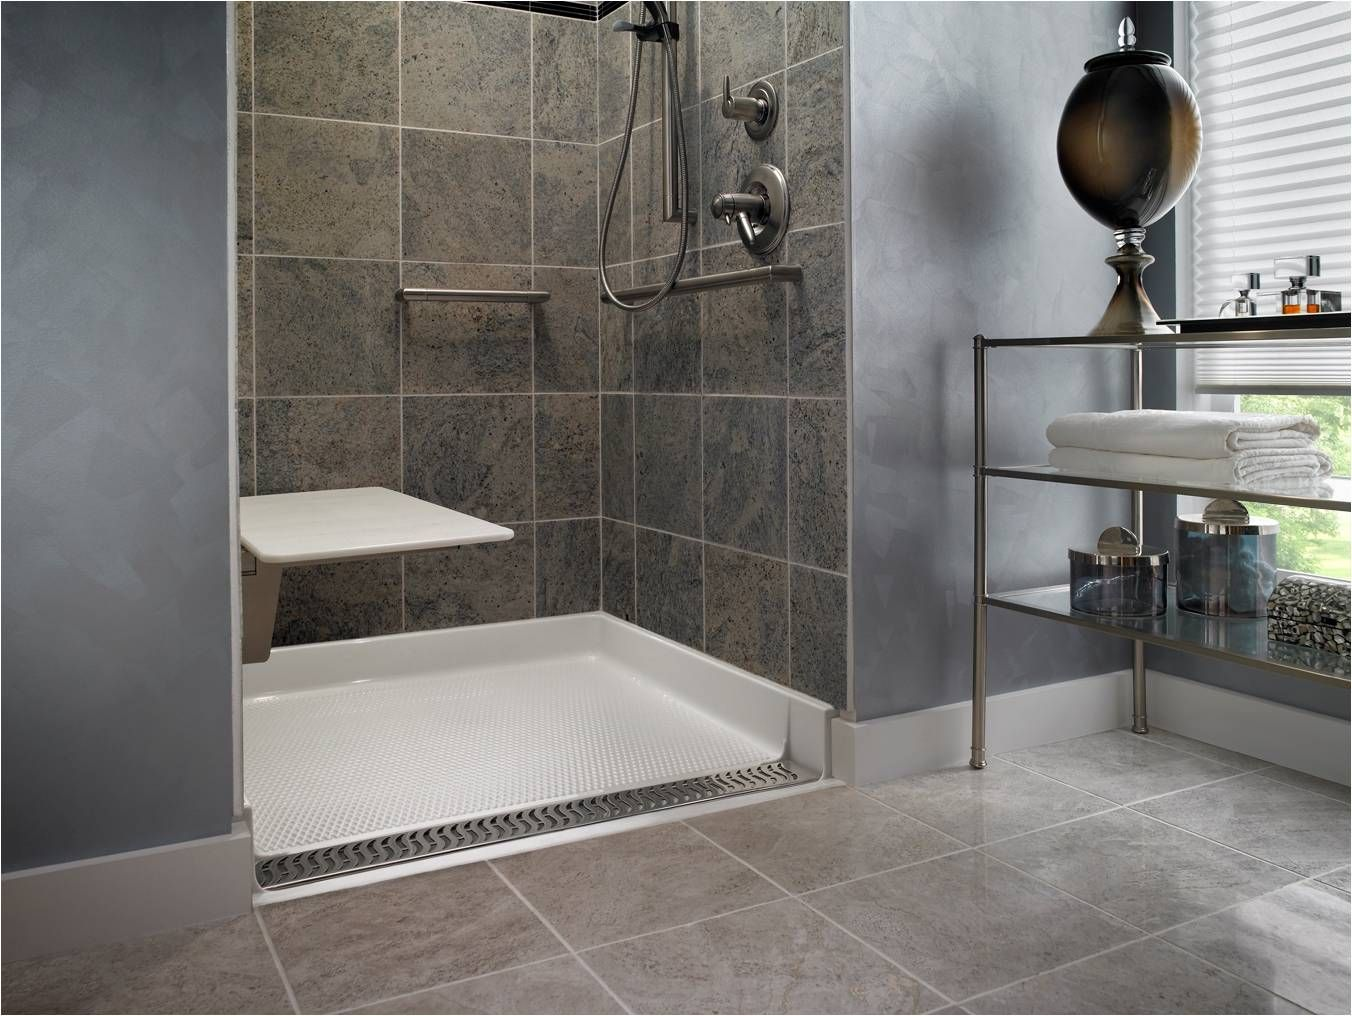 Tile zero threshold shower universaldesigntips learn for View bathroom designs